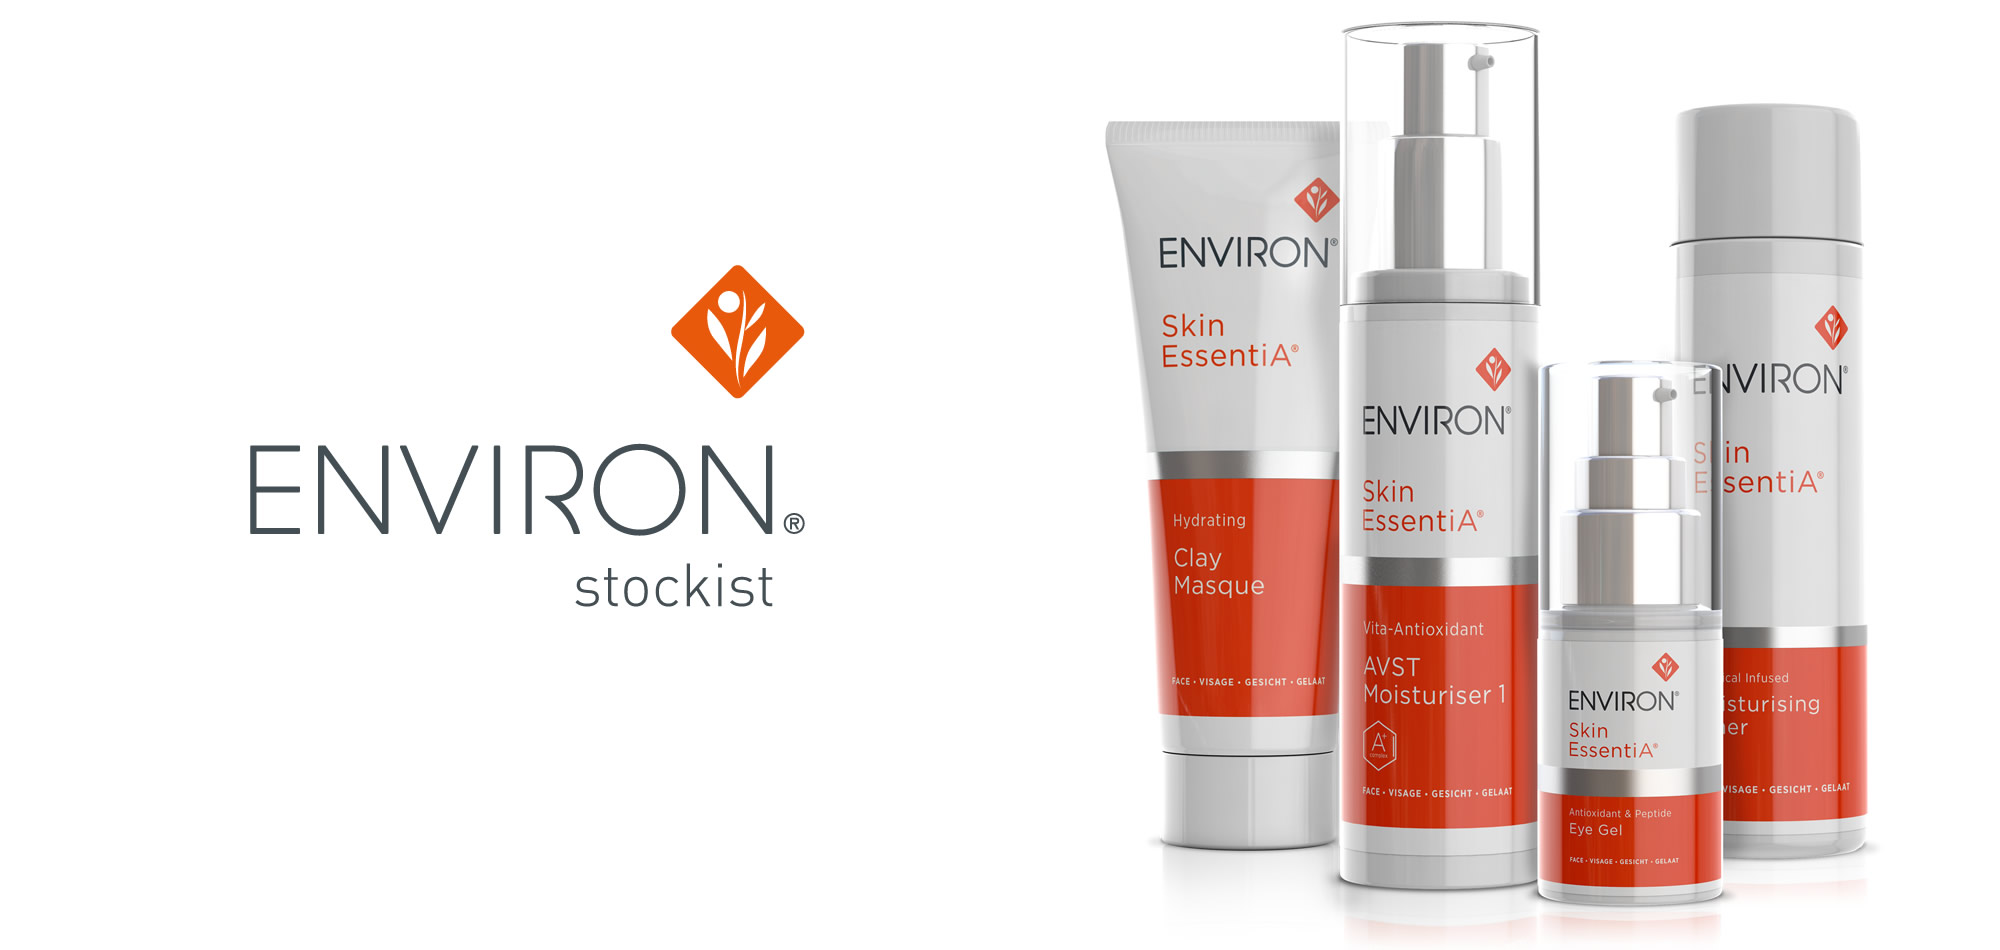 Environ, the skin care choice of Nutritional Therapists